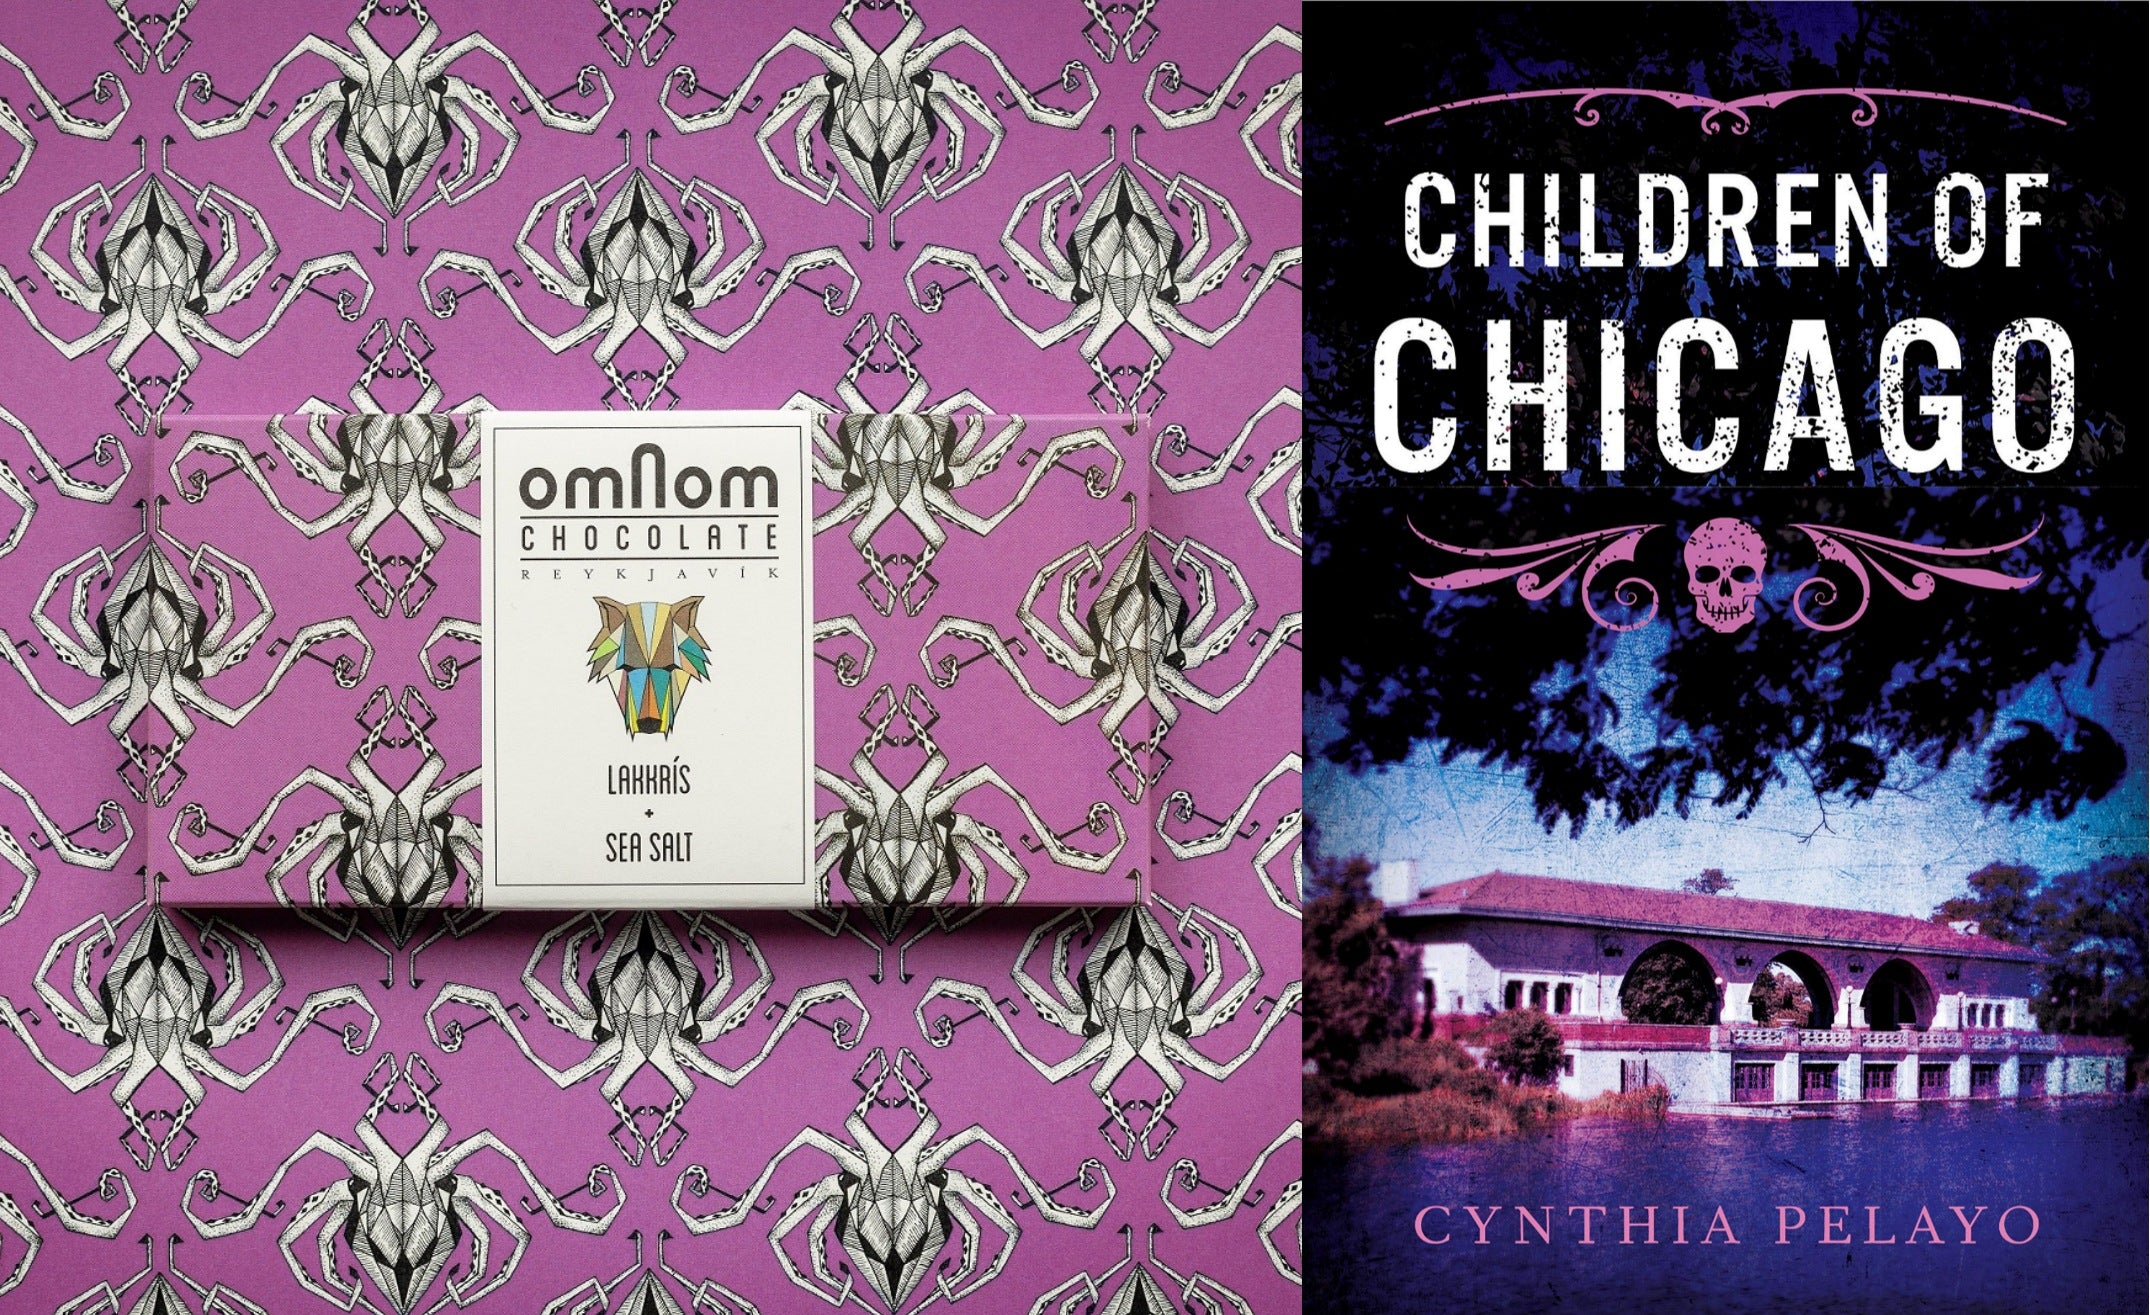 Pairing books and chocolate for Halloween